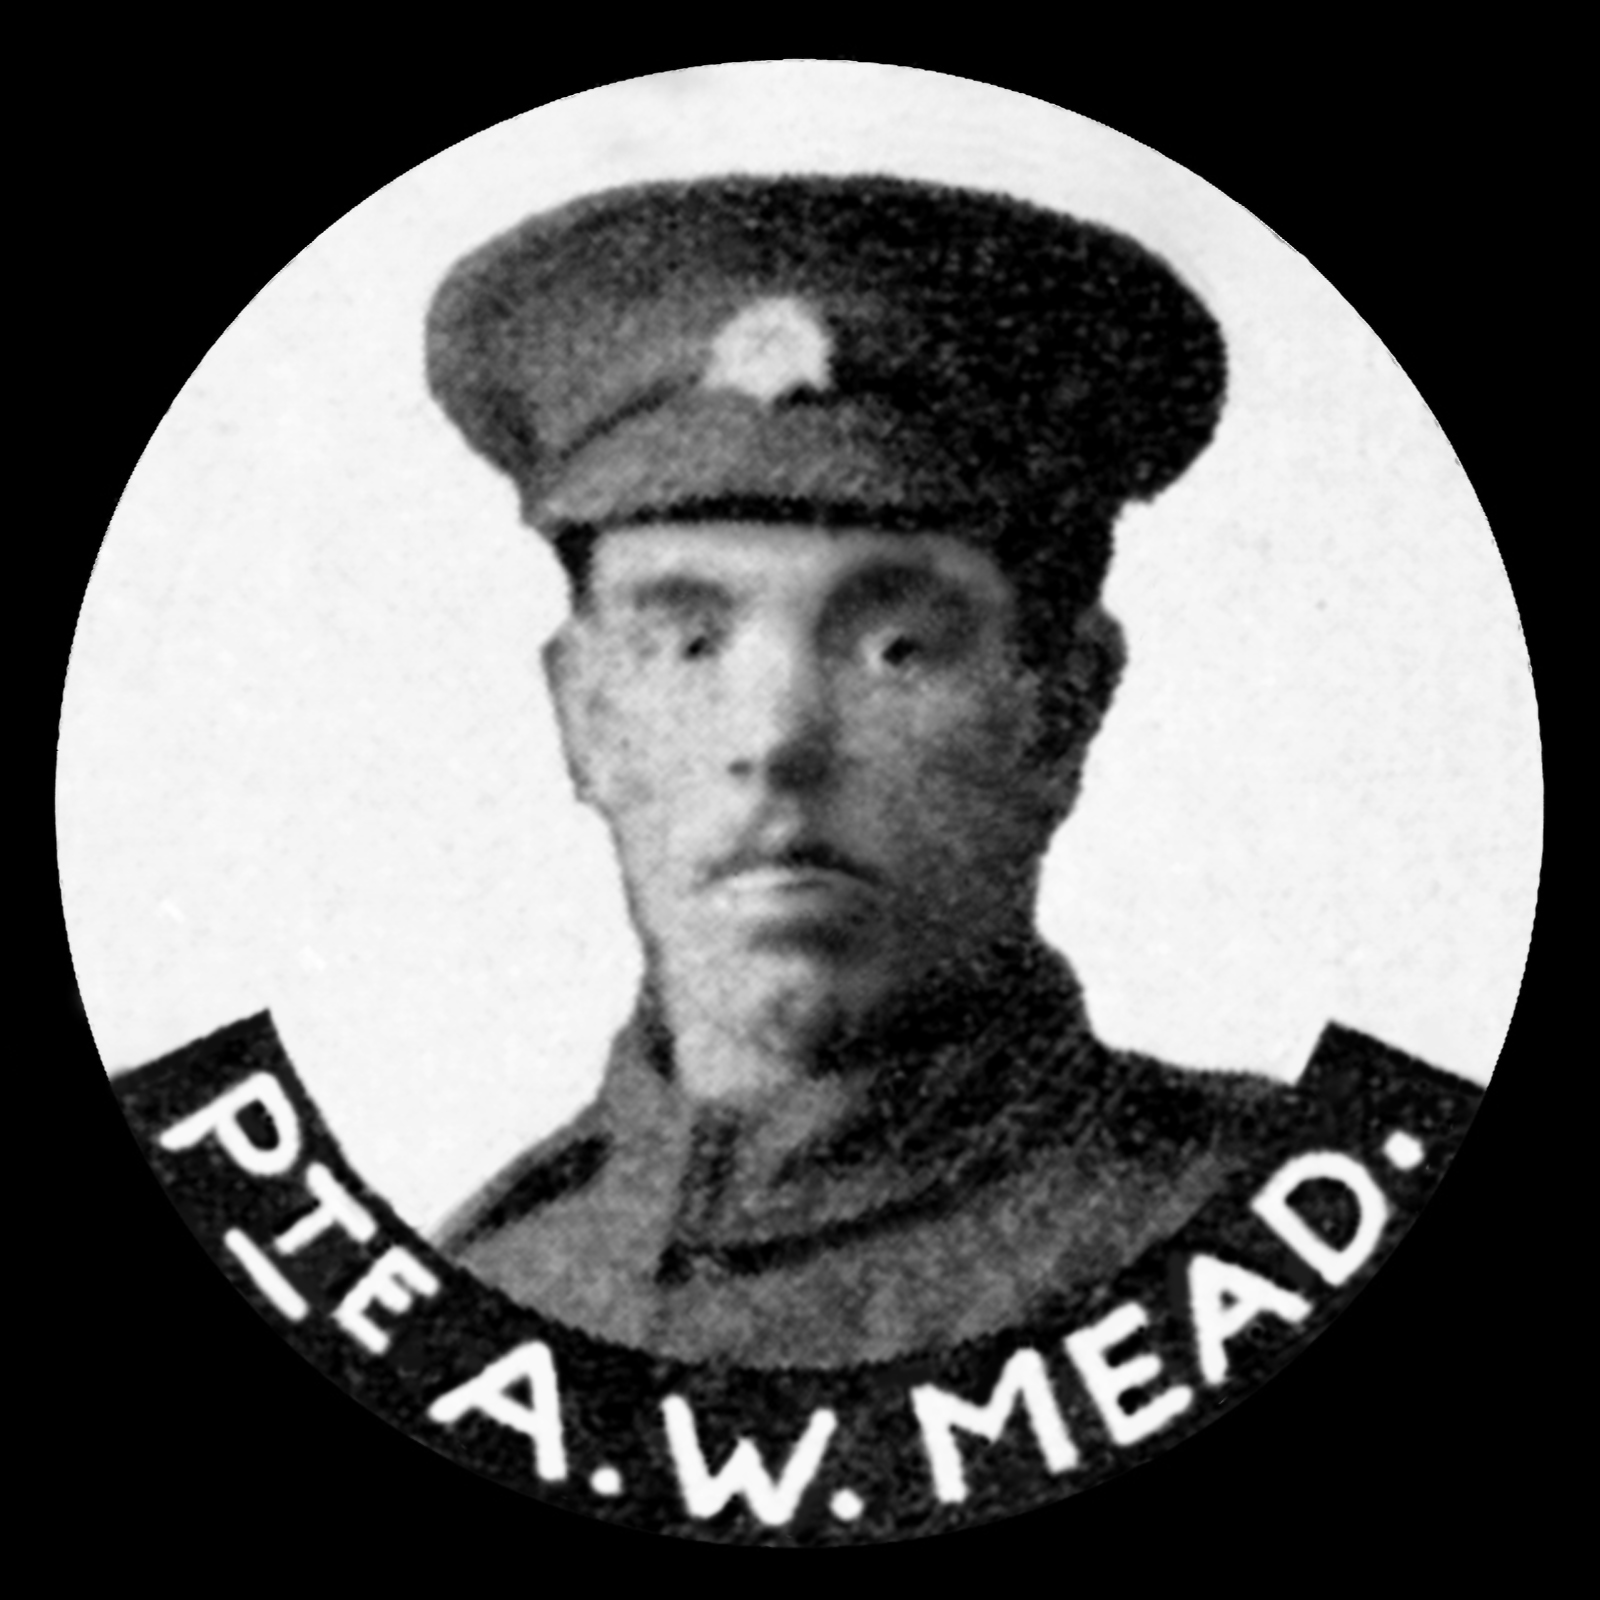 MEAD Arthur William